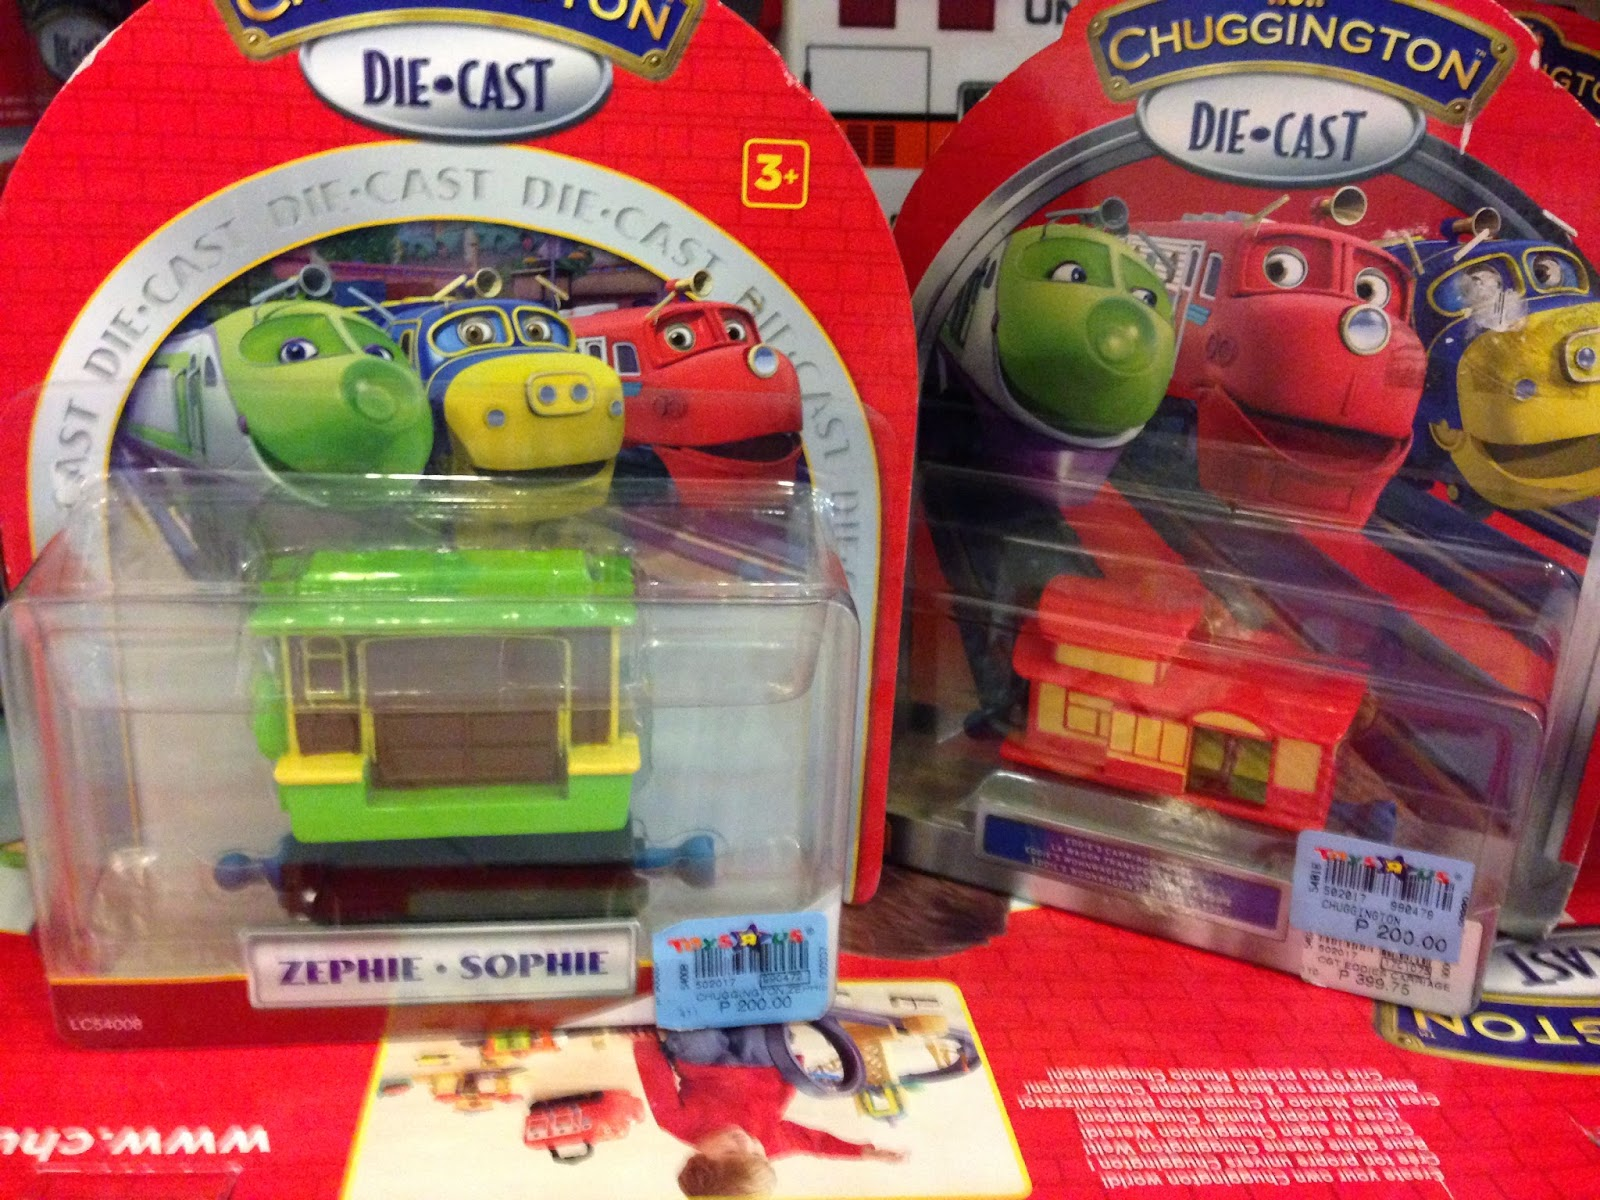 Chuggington Die-Cast Trains